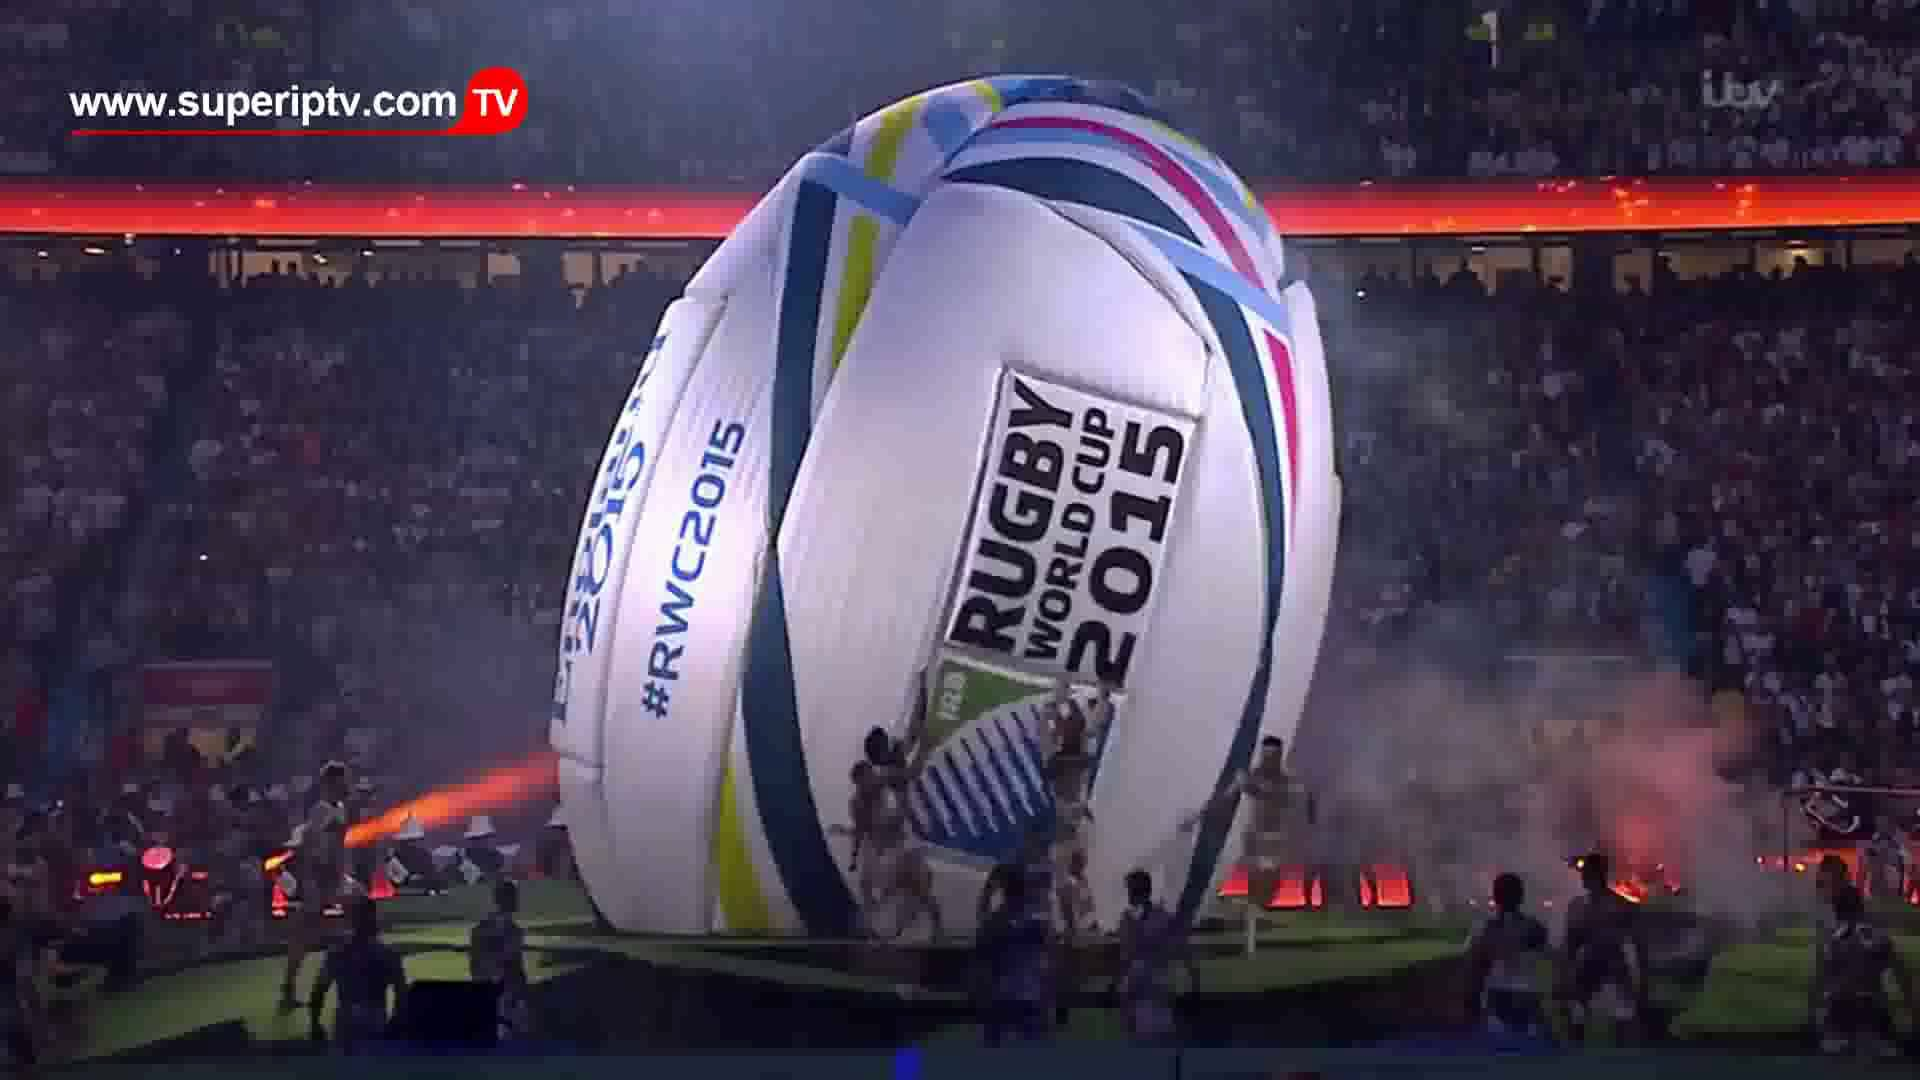 1920x1080 - Rugby World Cup 2015 Wallpapers 11